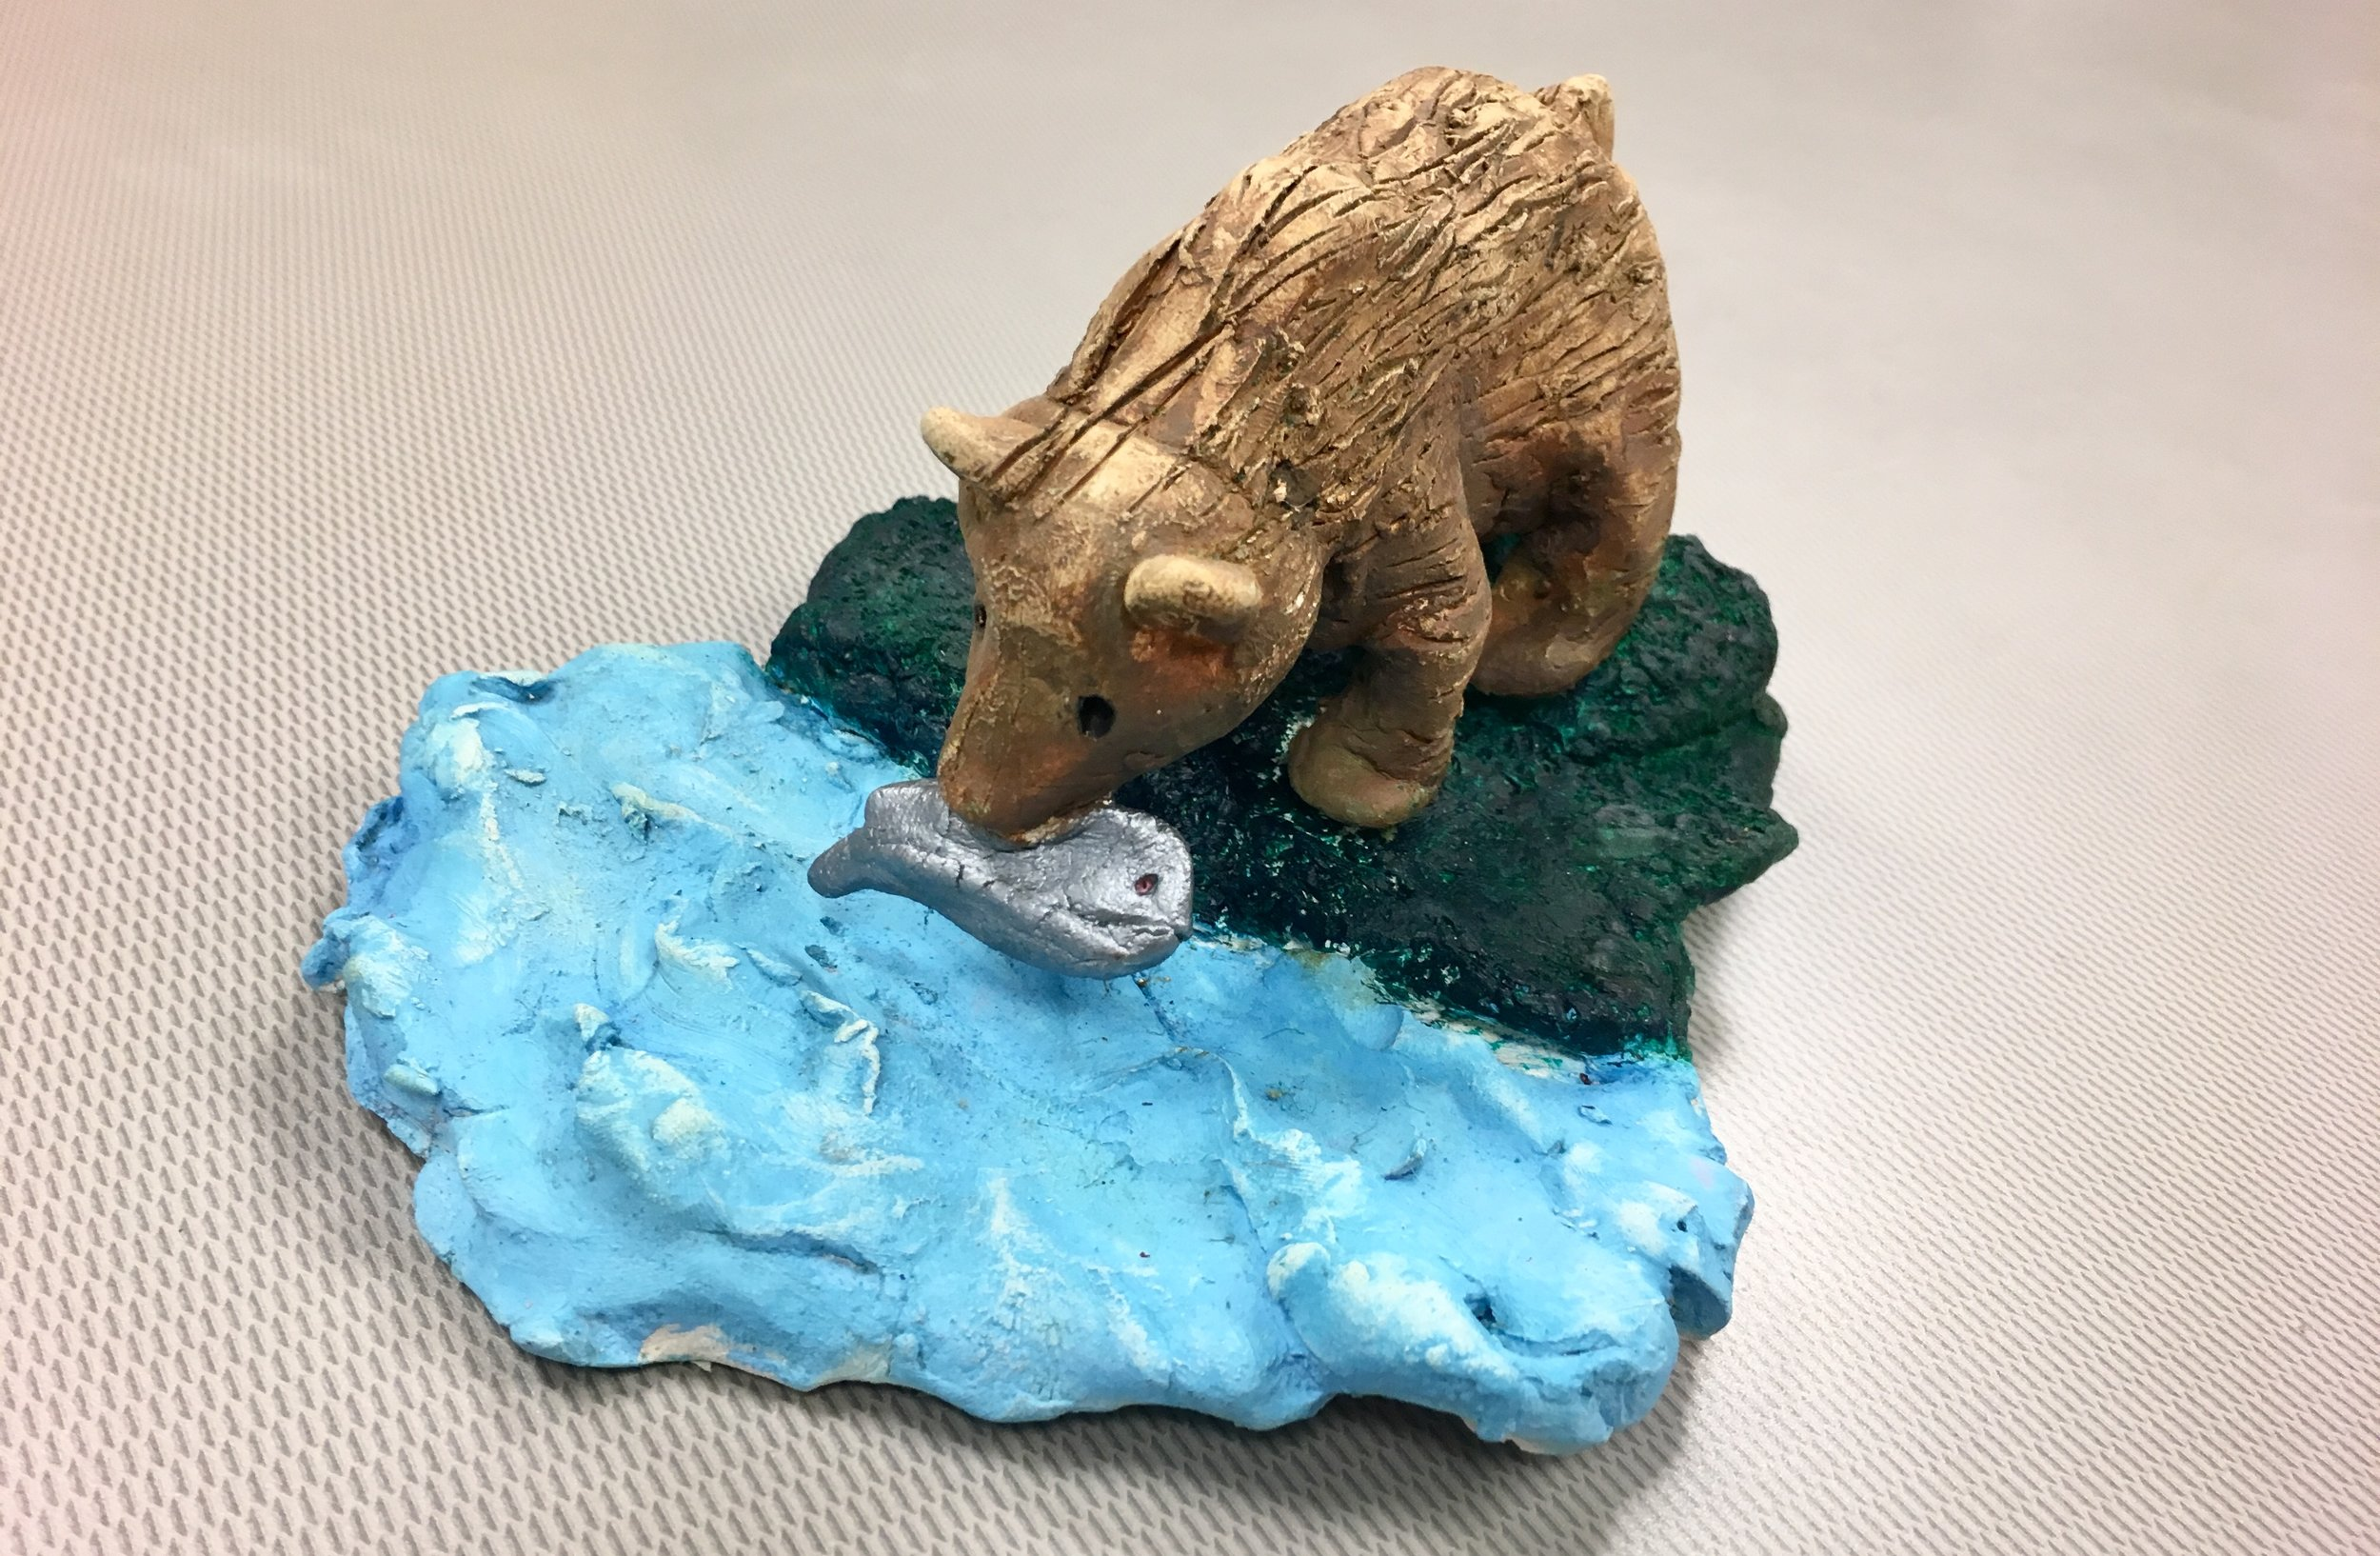 Photo Description: Sculpture of a light brown bear with a fish in its mouth standing on dark green grass with rough blue water.